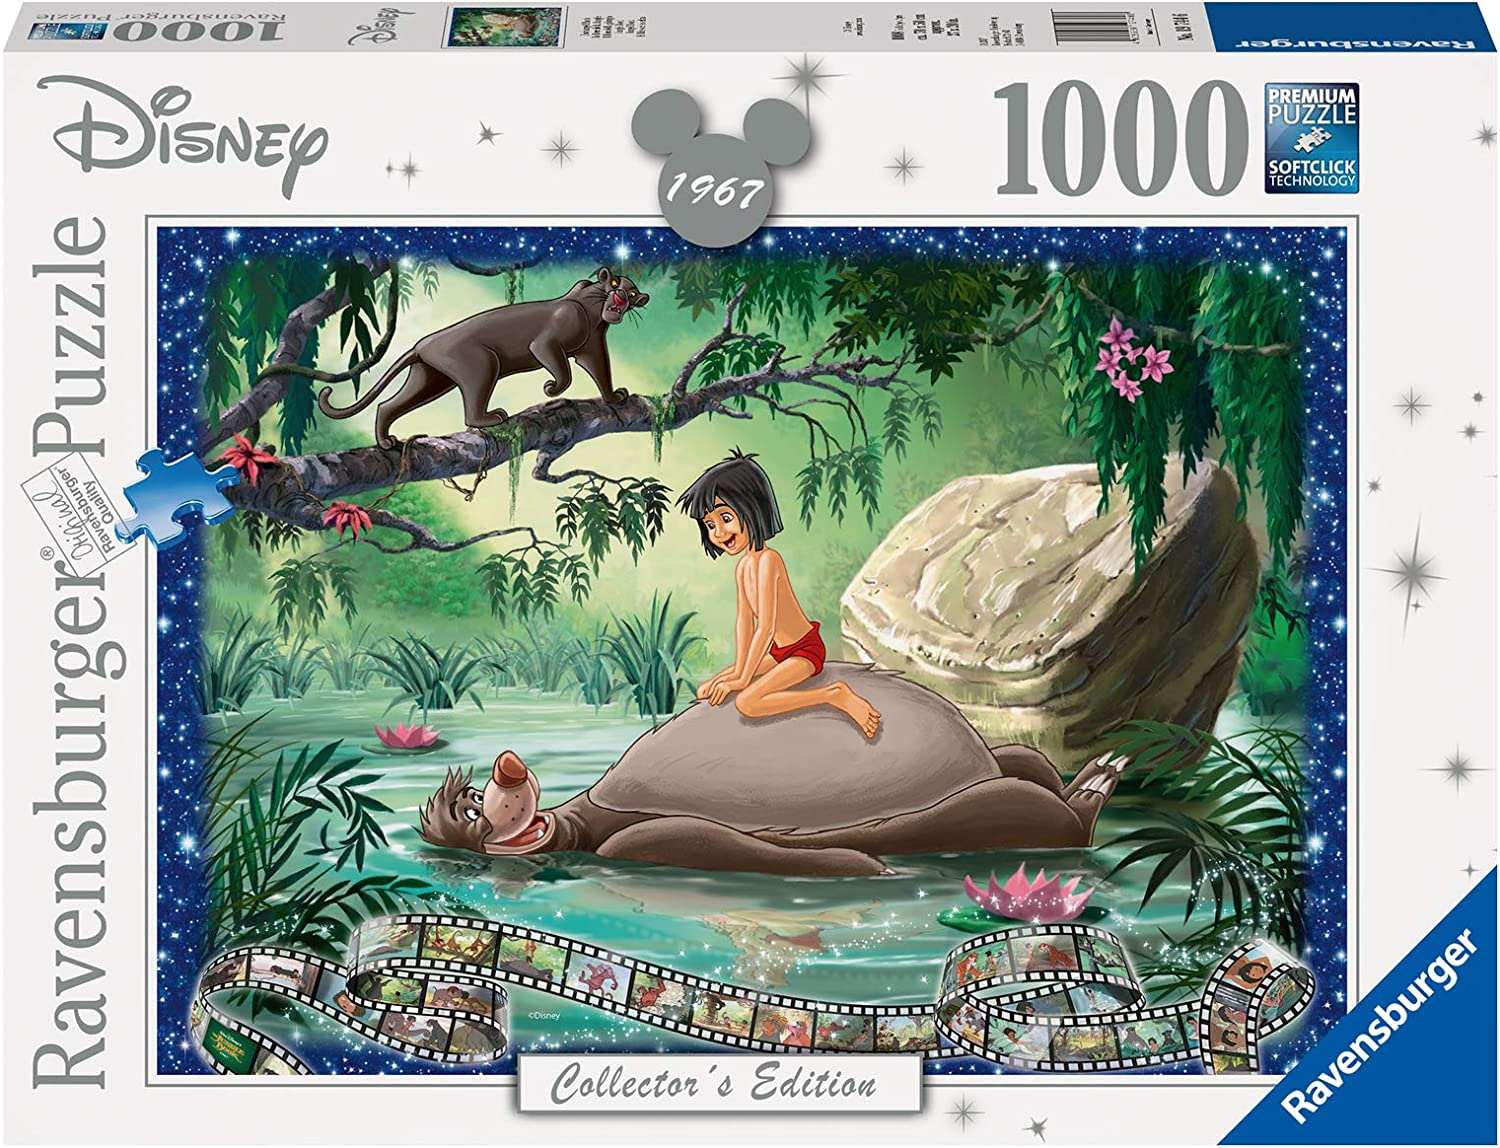 Ravensburger Disney Collector's Edition Weekly update Jungle 1000 Book Piece New life J